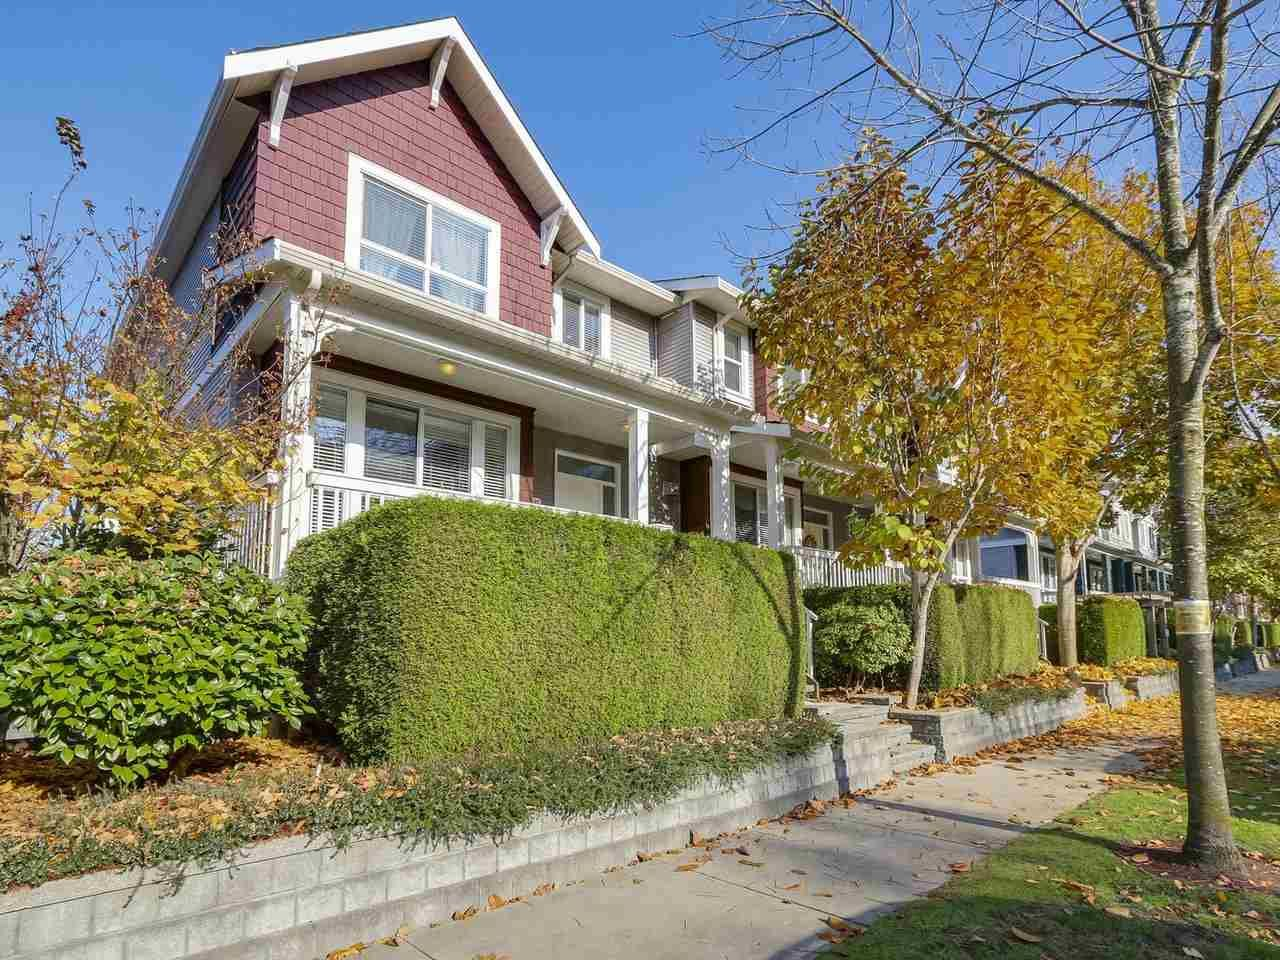 """Main Photo: 55 5999 ANDREWS Road in Richmond: Steveston South Townhouse for sale in """"RIVERWIND"""" : MLS®# R2219239"""